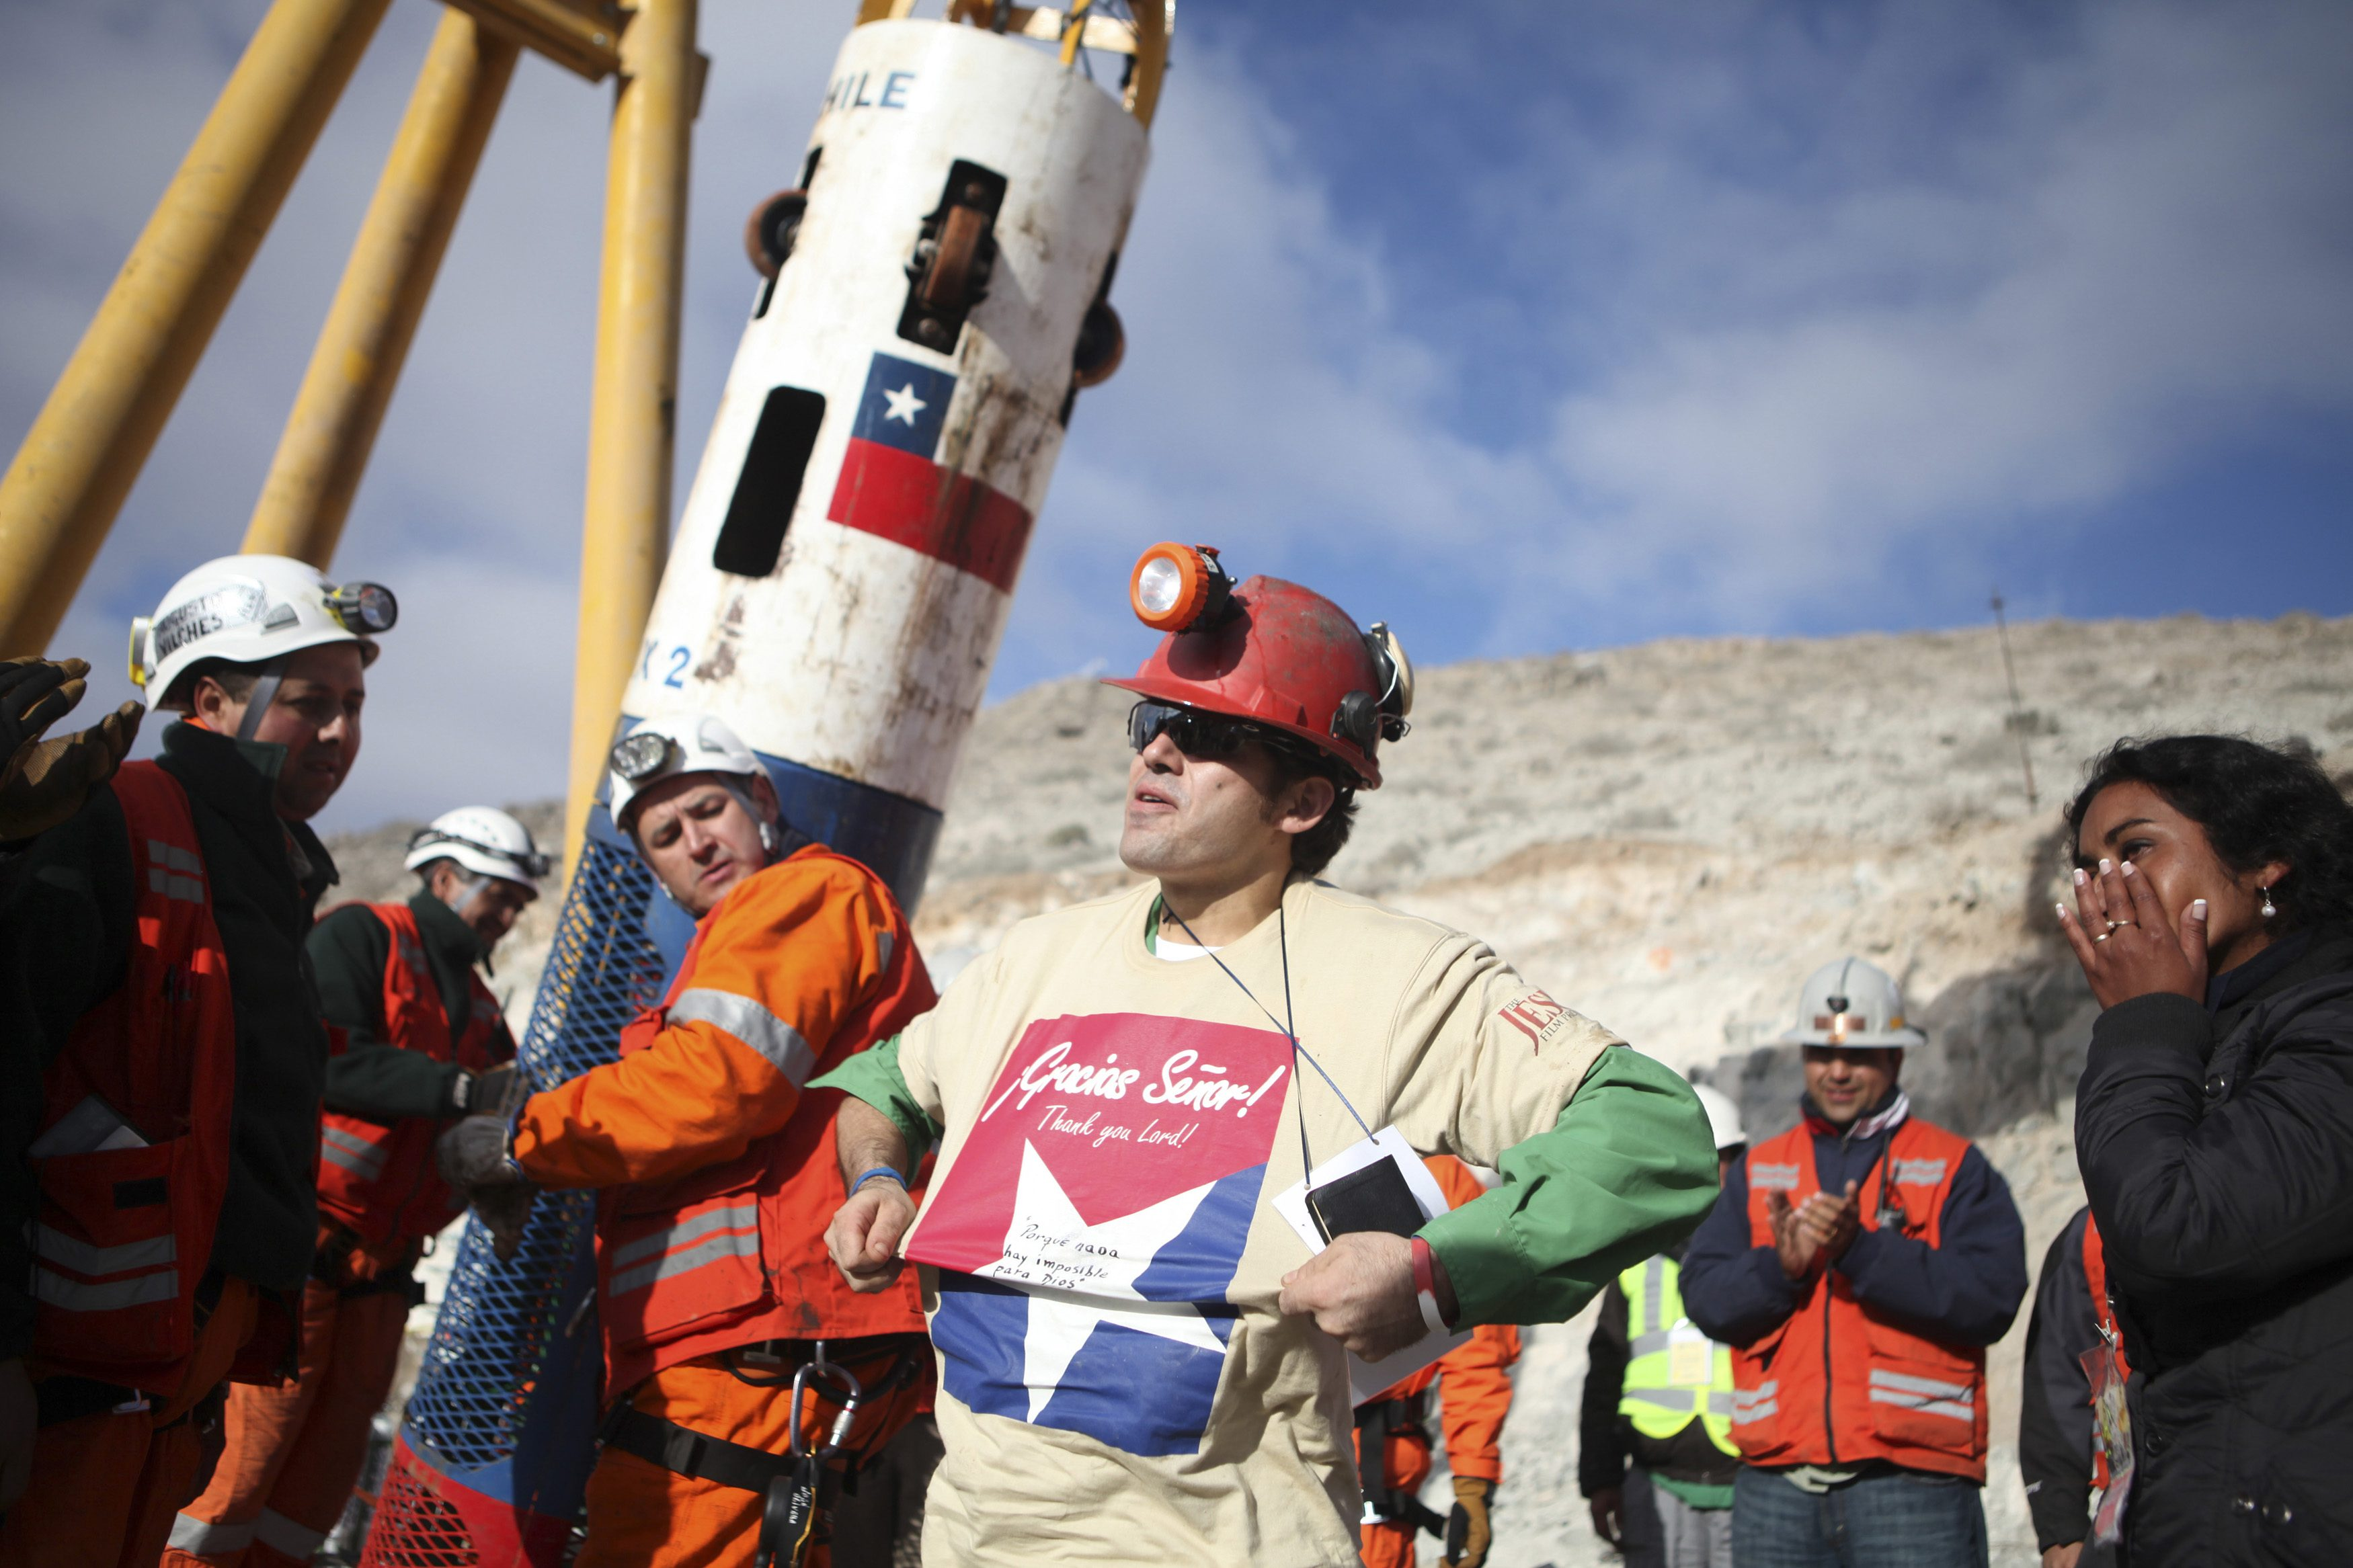 Media Report Confirms the World's Obsession With Upcoming Chilean Miner Movie